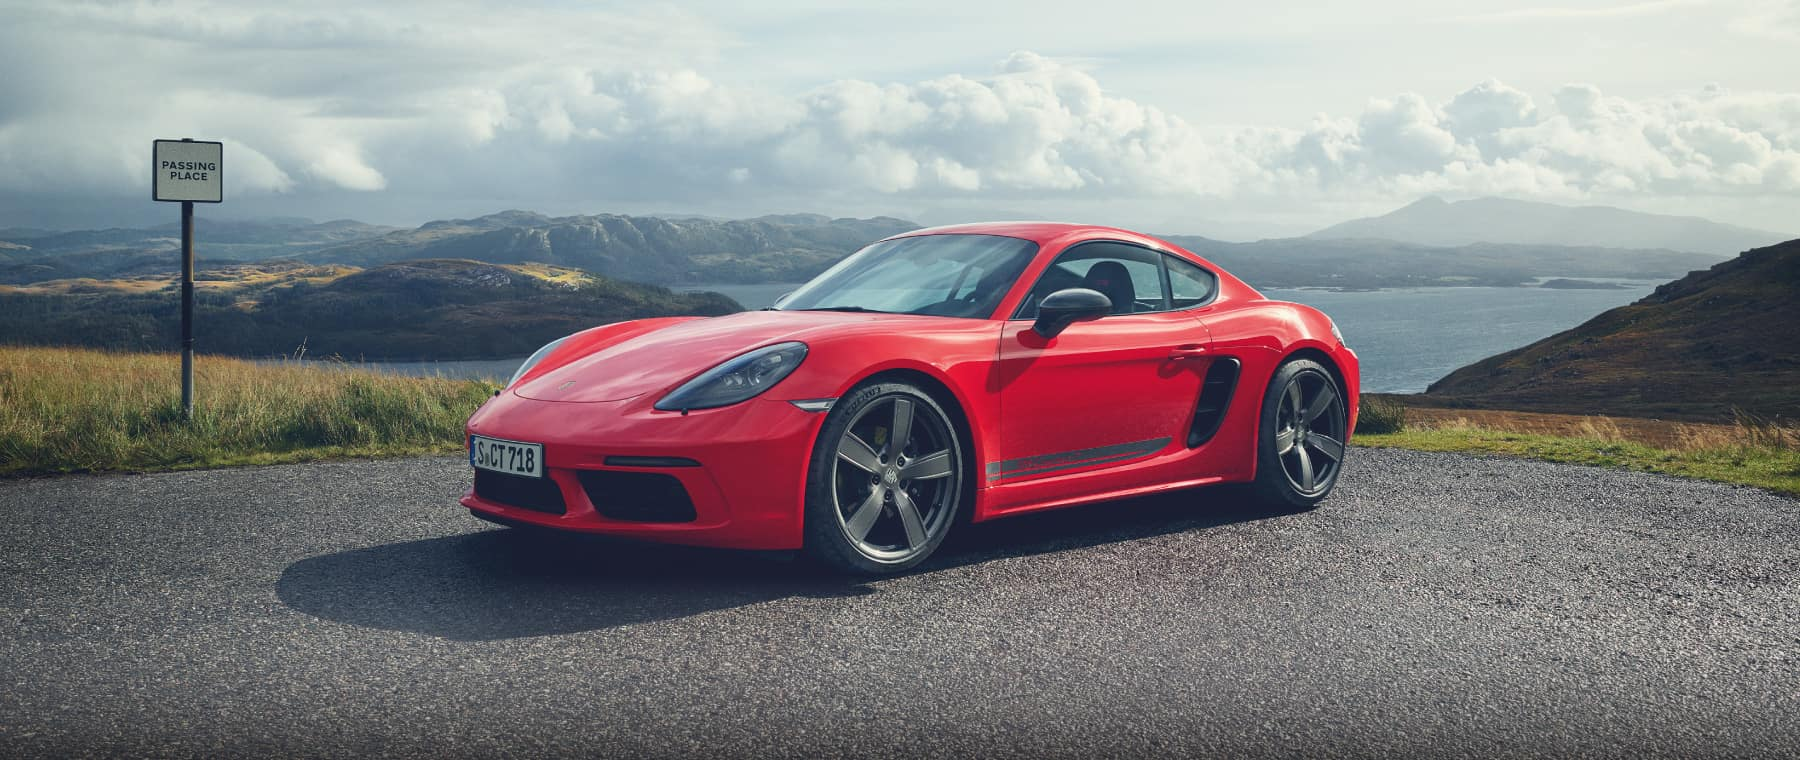 Welcome to Autobahn Porsche Fort Worth | Stay Driven